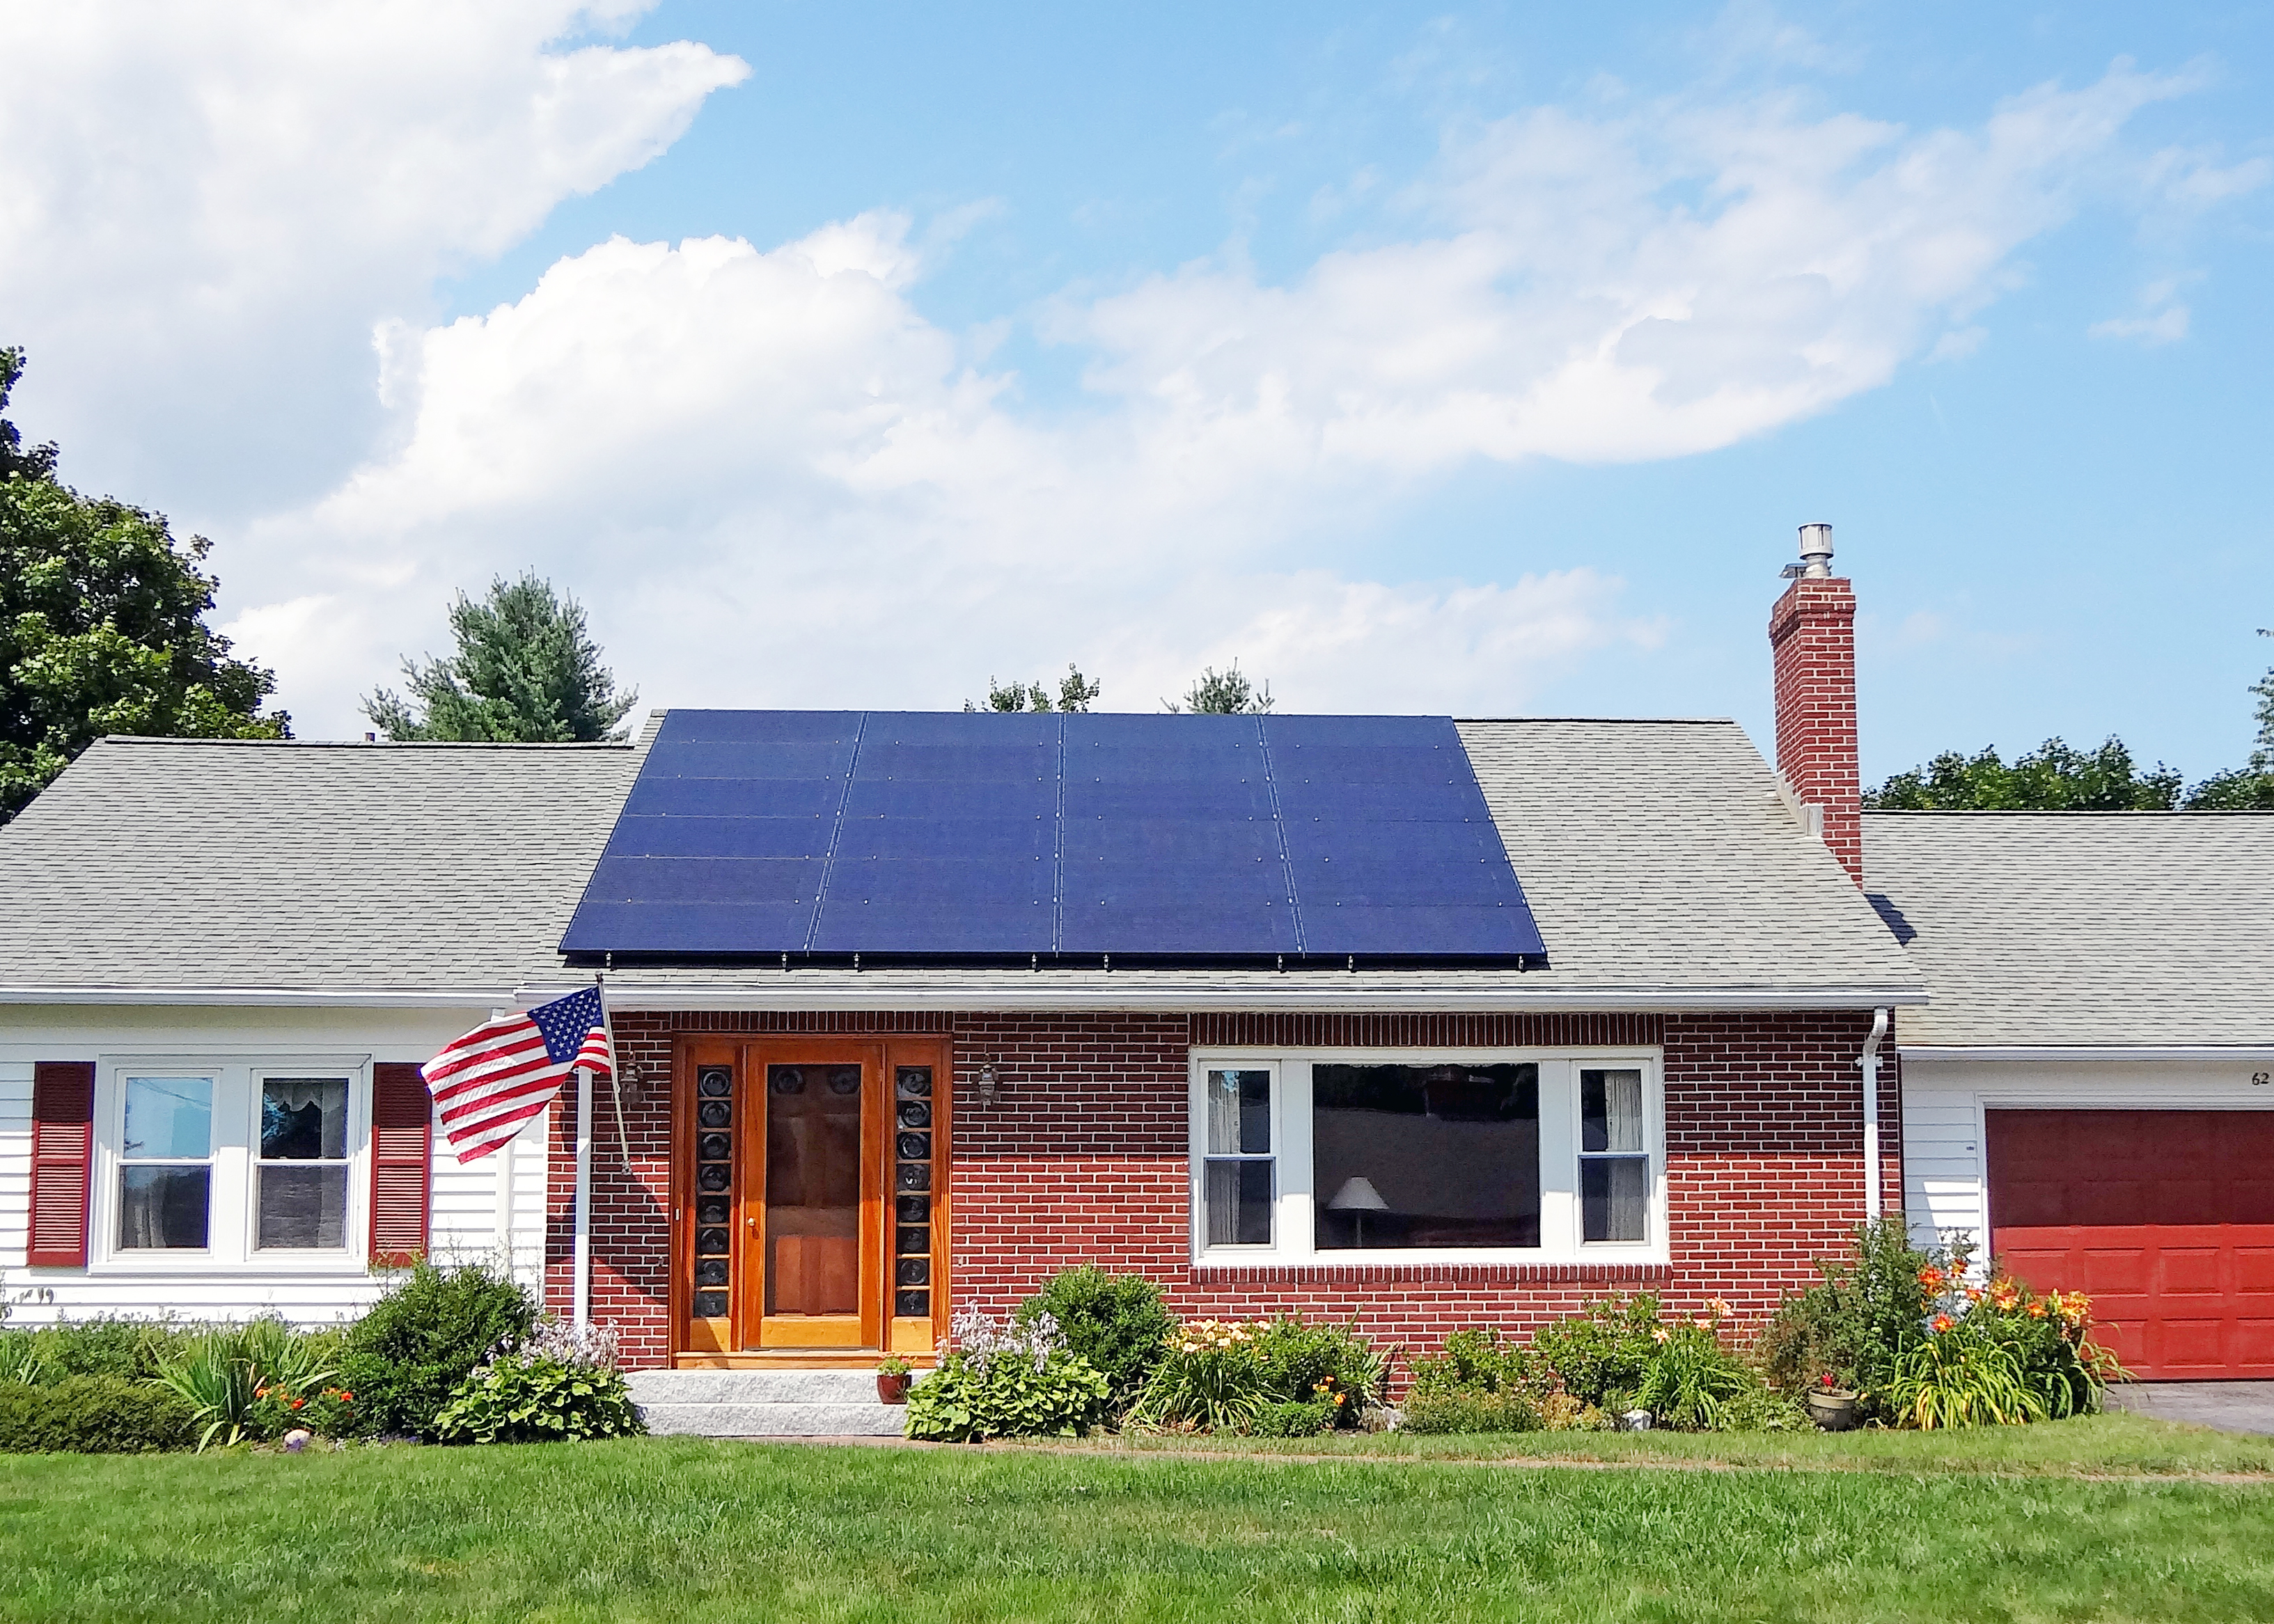 Solar Electric Panels For Homes In Me Nh Ma Revision Energy Cells Produce Dc Electricity From Light Sunlight Contains Two Boys Play Outside Enjoying The Sun As Their House Produces With Installed By